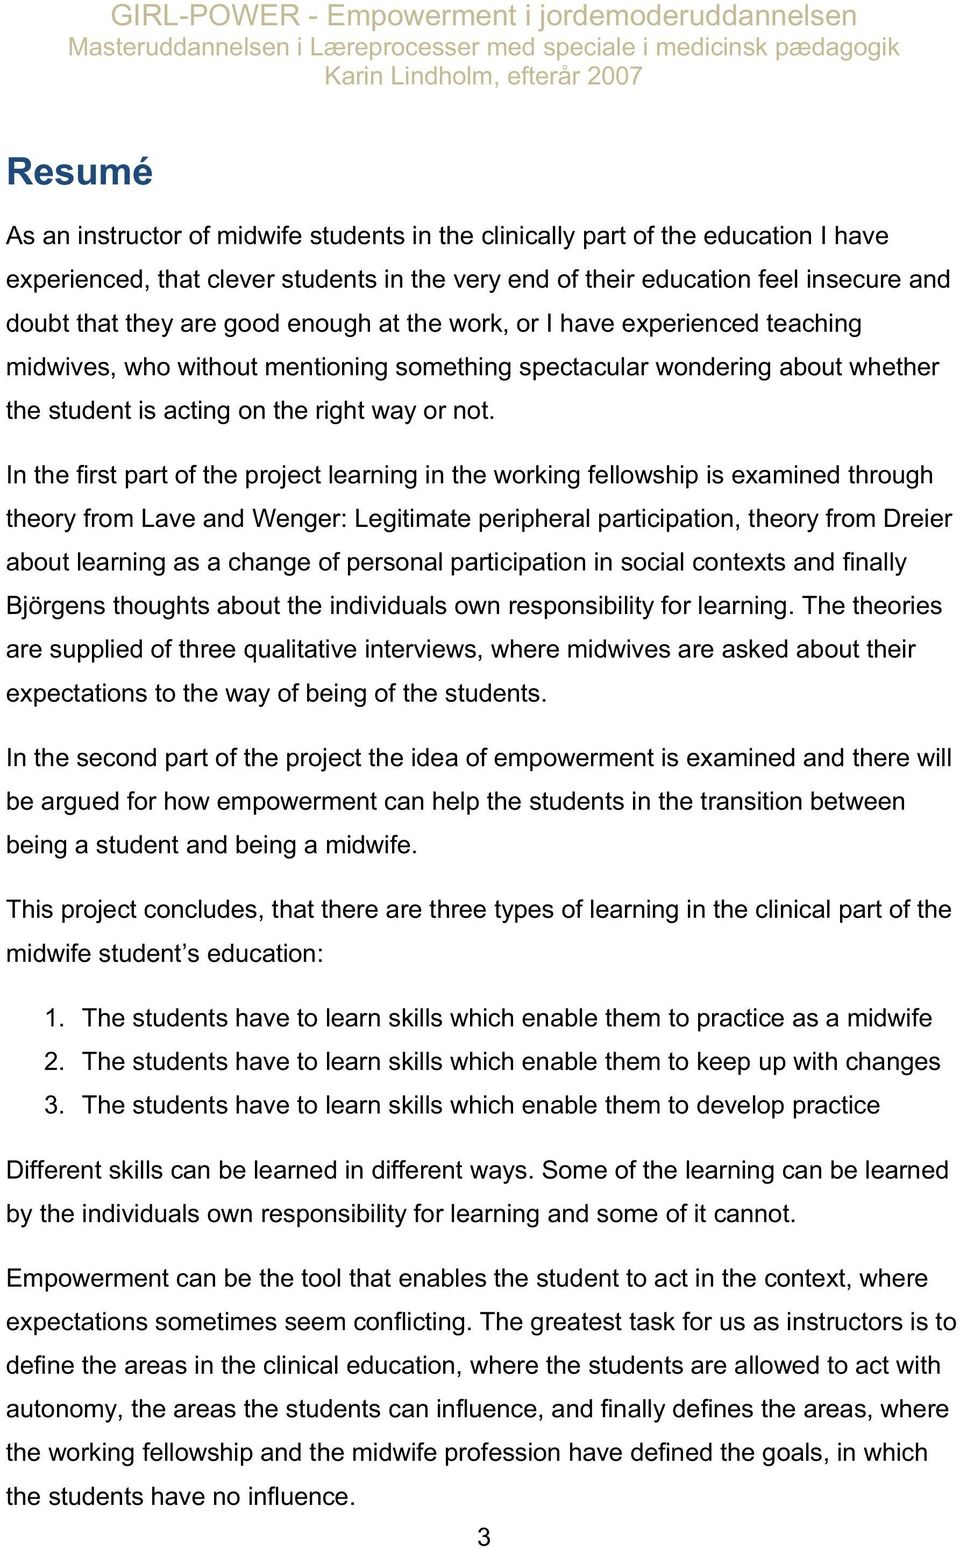 In the first part of the project learning in the working fellowship is examined through theory from Lave and Wenger: Legitimate peripheral participation, theory from Dreier about learning as a change